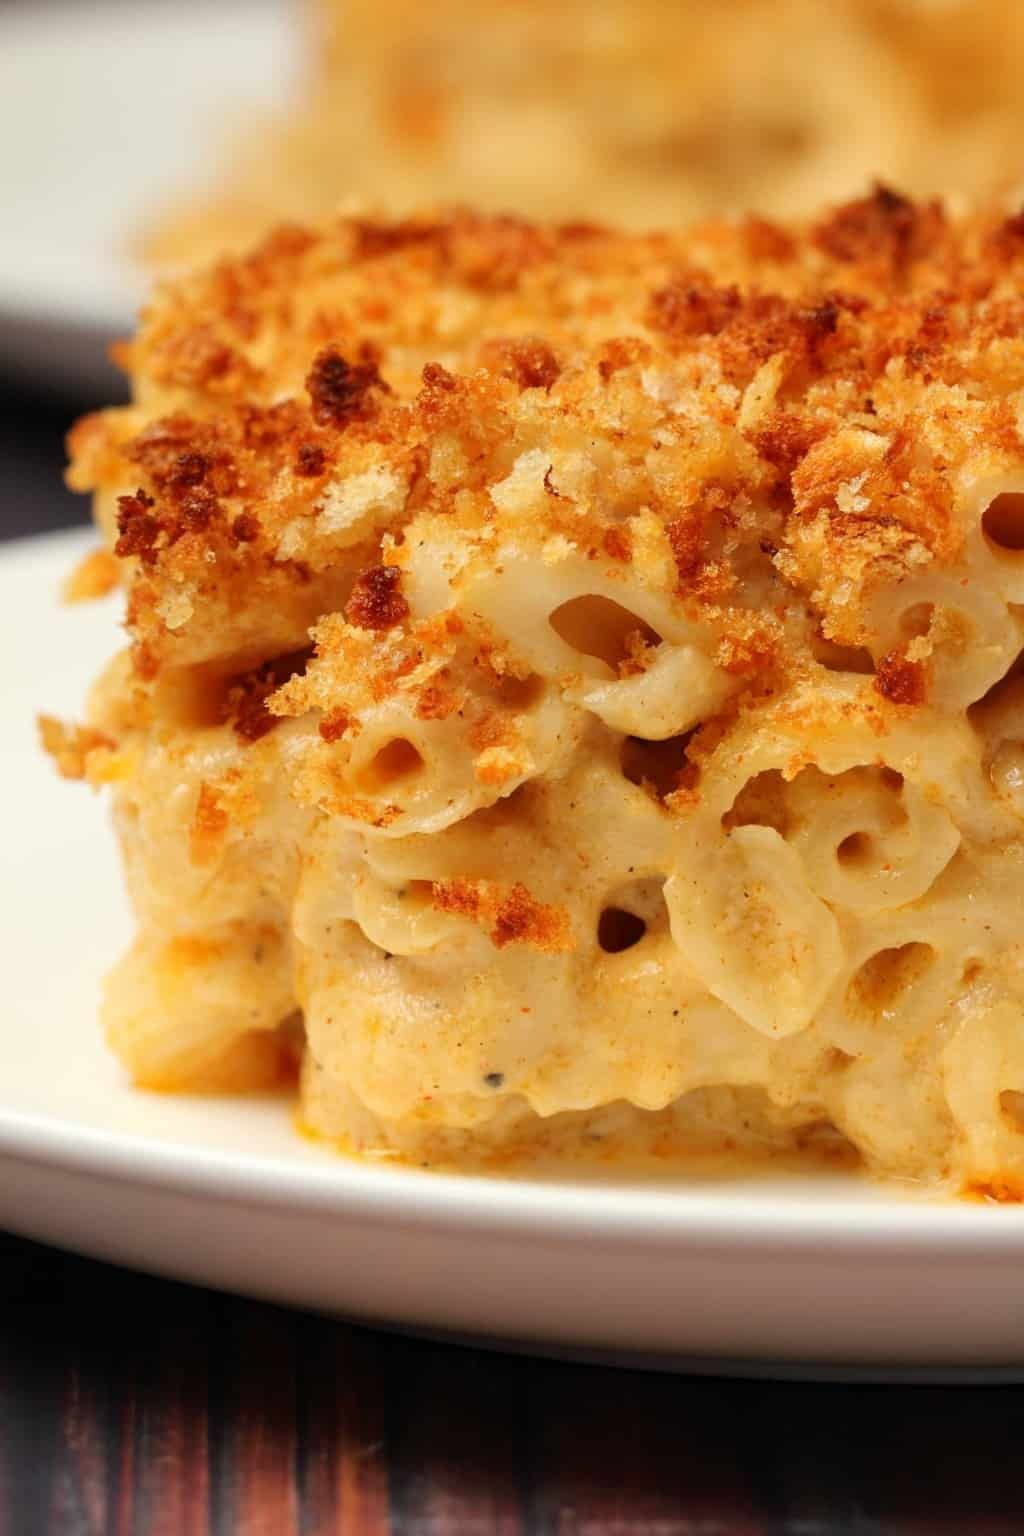 This Classic Vegan Mac And Cheese Is Ultra Cheesy Saucy And Creamy Topped With Br Vegan Mac And Cheese Vegan Baked Mac And Cheese Recipe Healthy Vegan Dishes